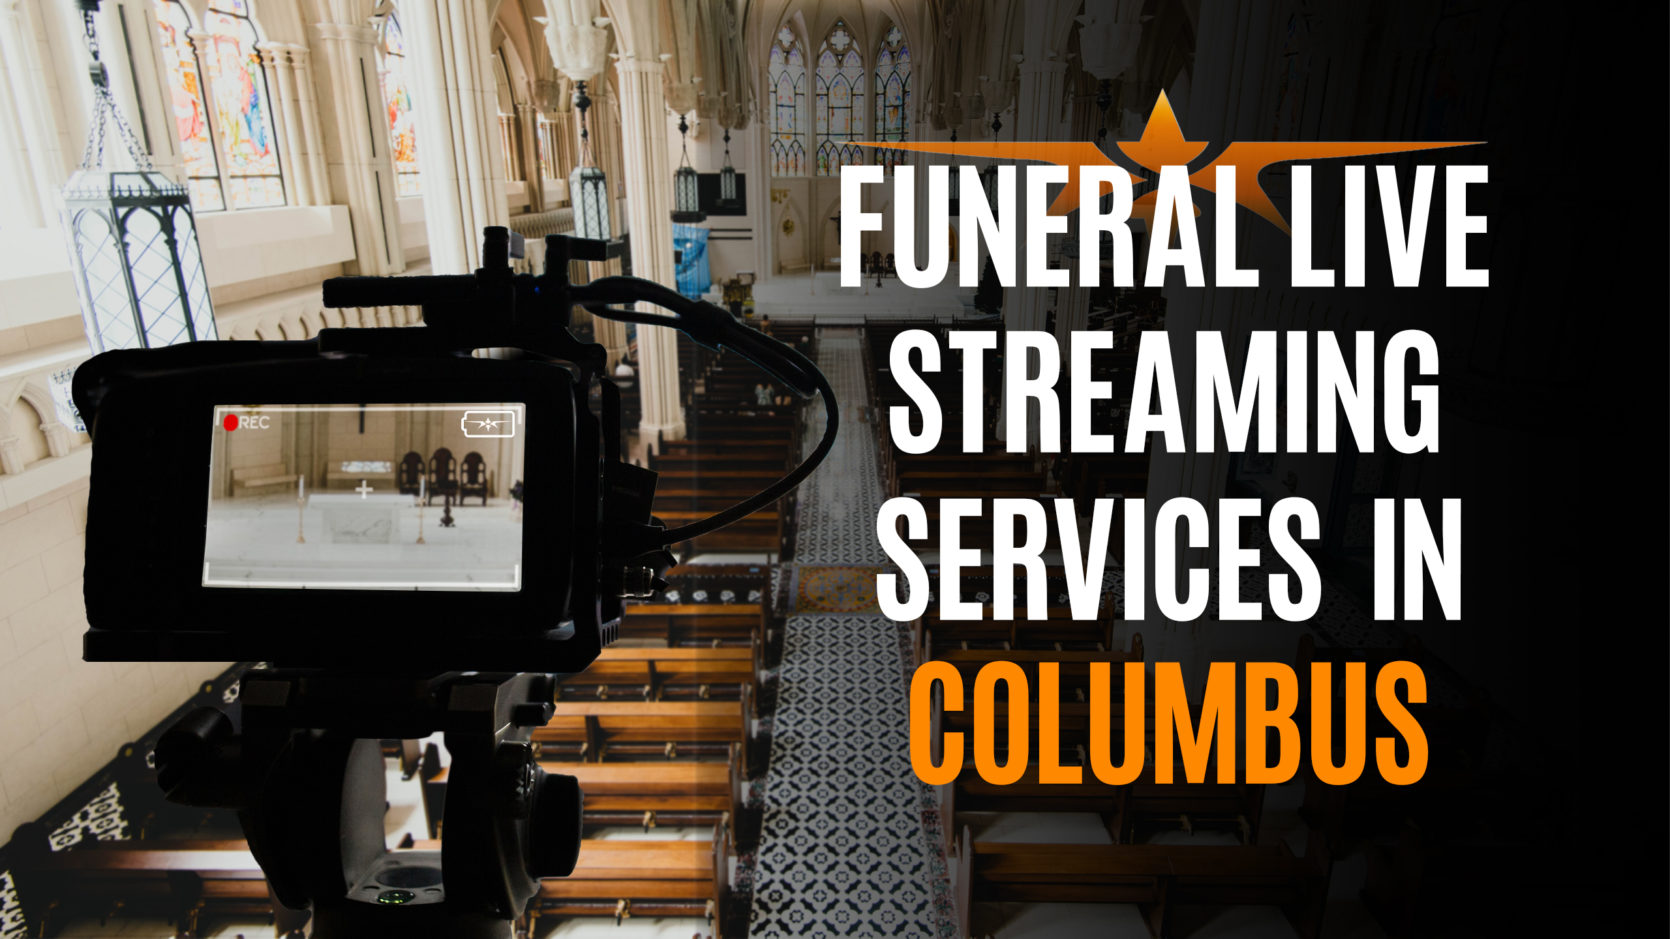 Funeral Live Streaming Services in Columbus